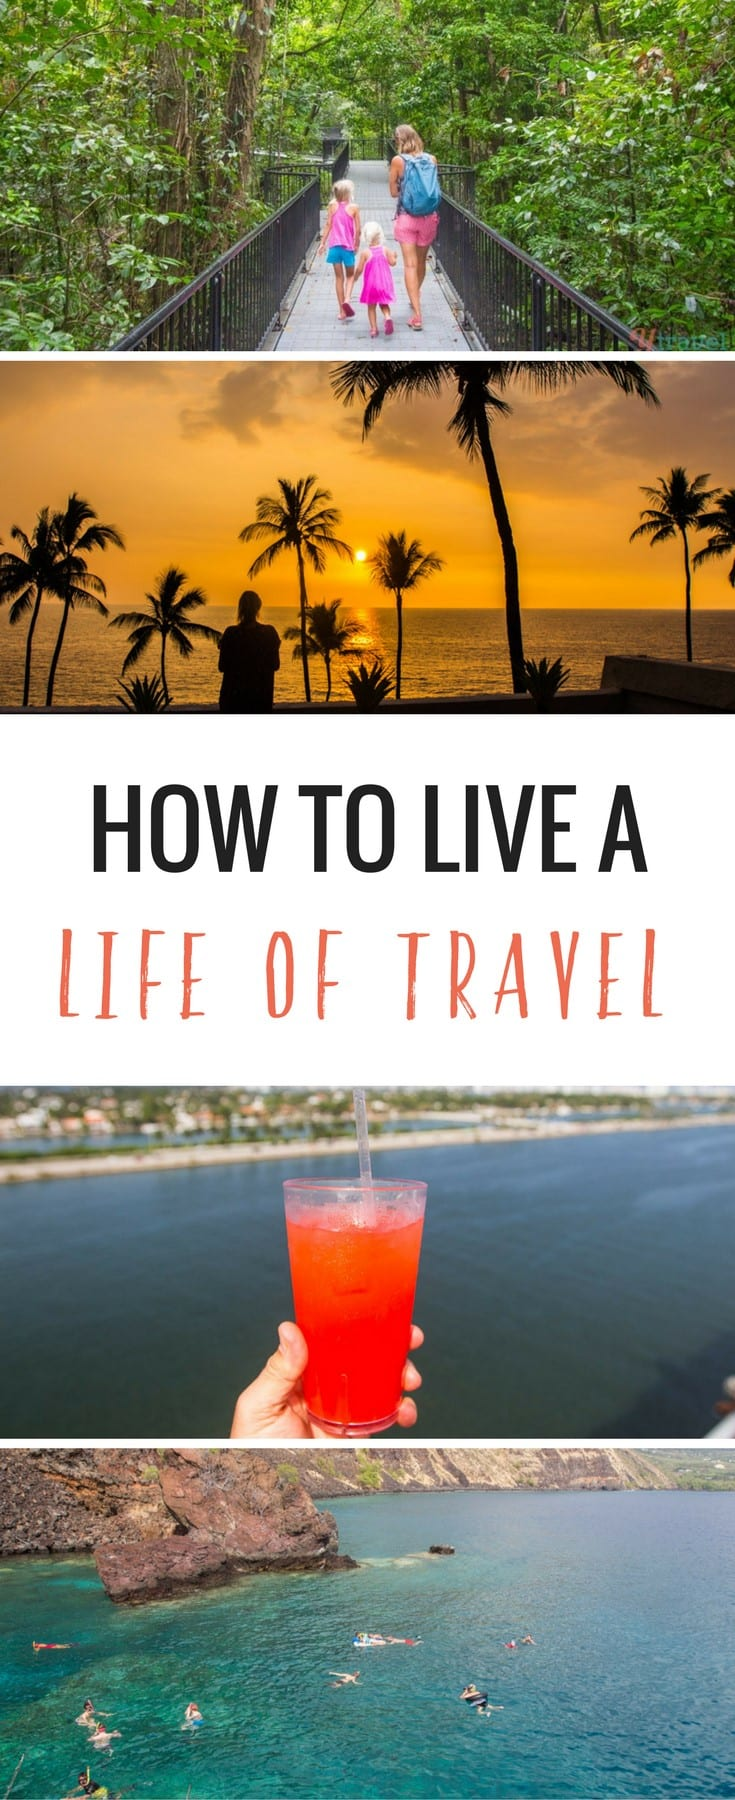 Want to know how to live a life of travel? We've been doing it for 20 years so can show you it's easier than you think #lifeoftravel #travelifestyle #nomad